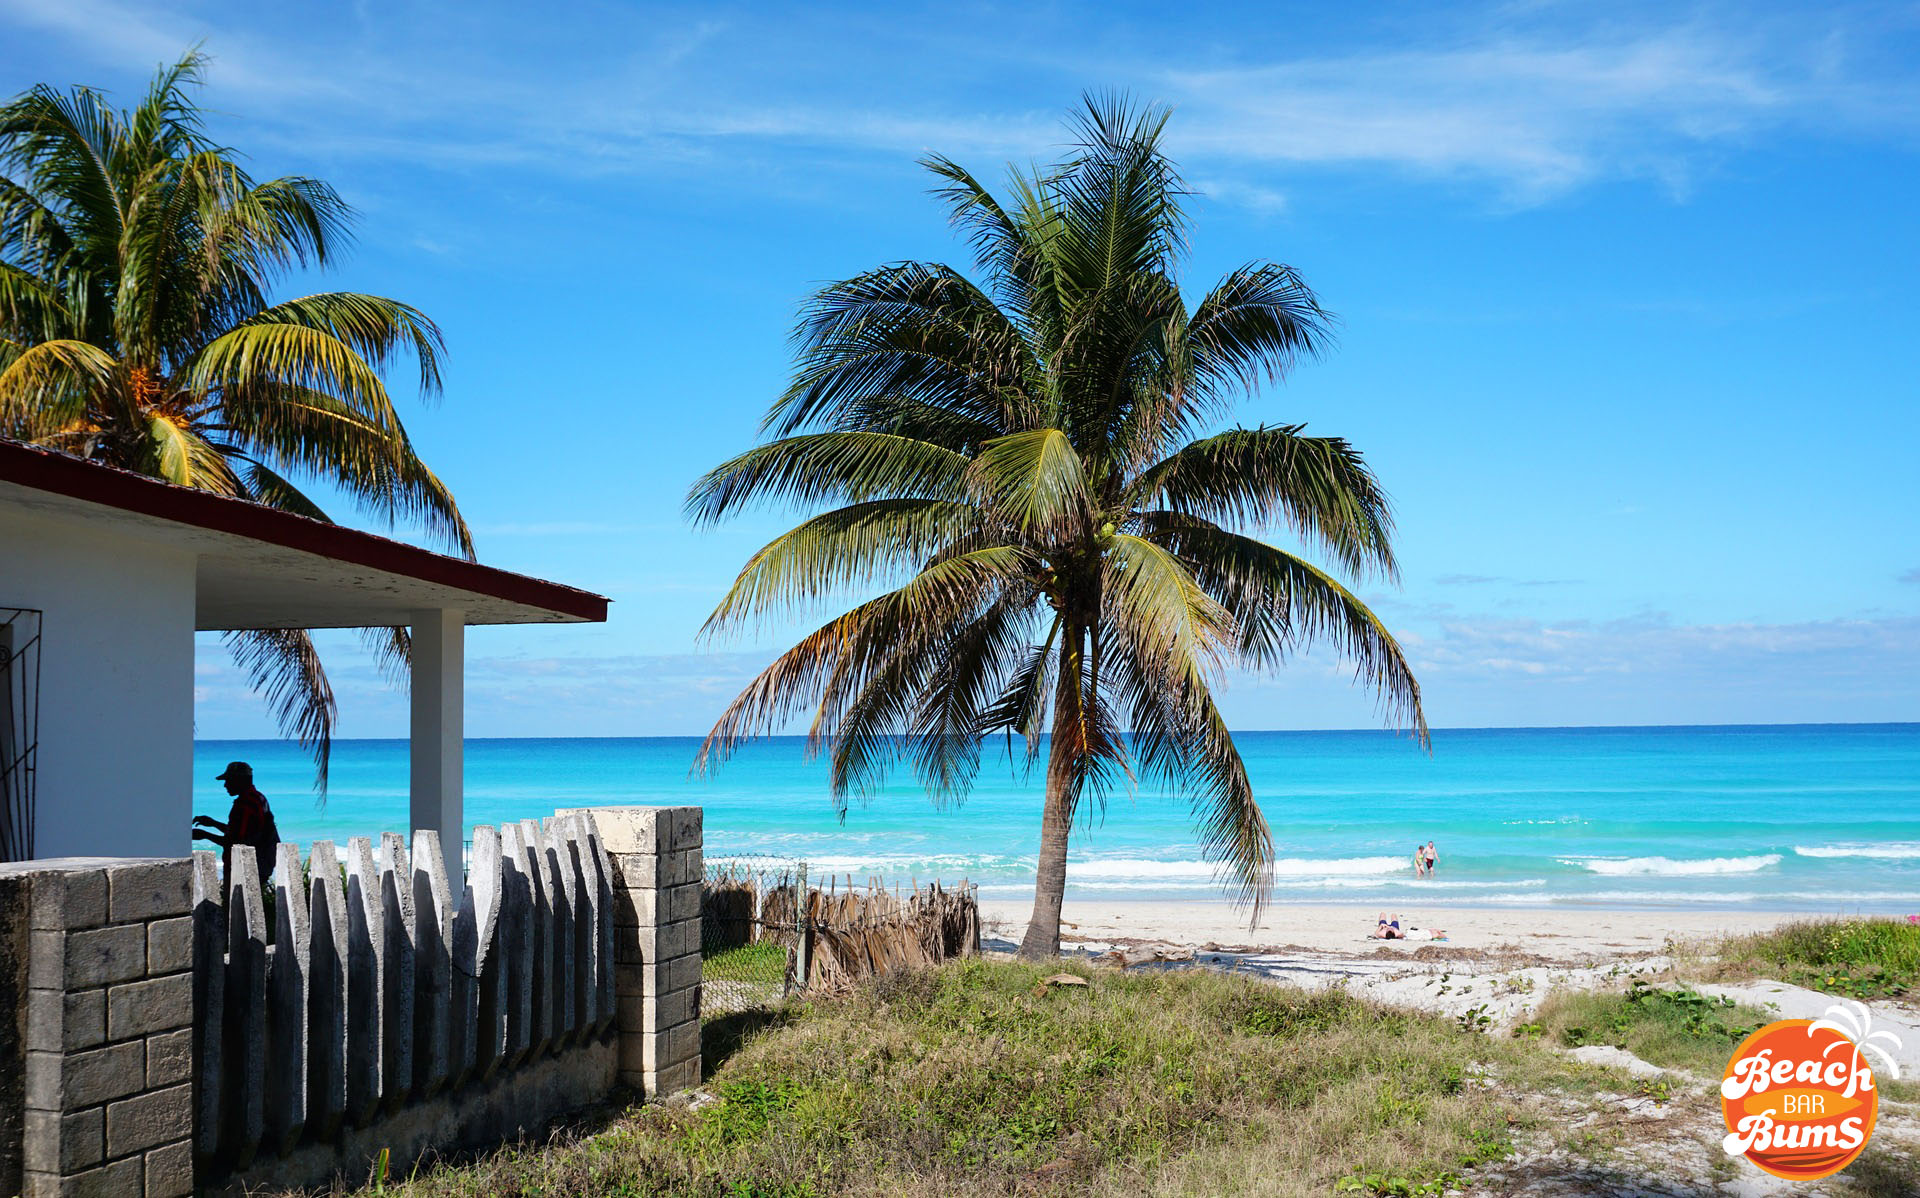 Beach Thursday Pic Of The Week Varadero Cuba